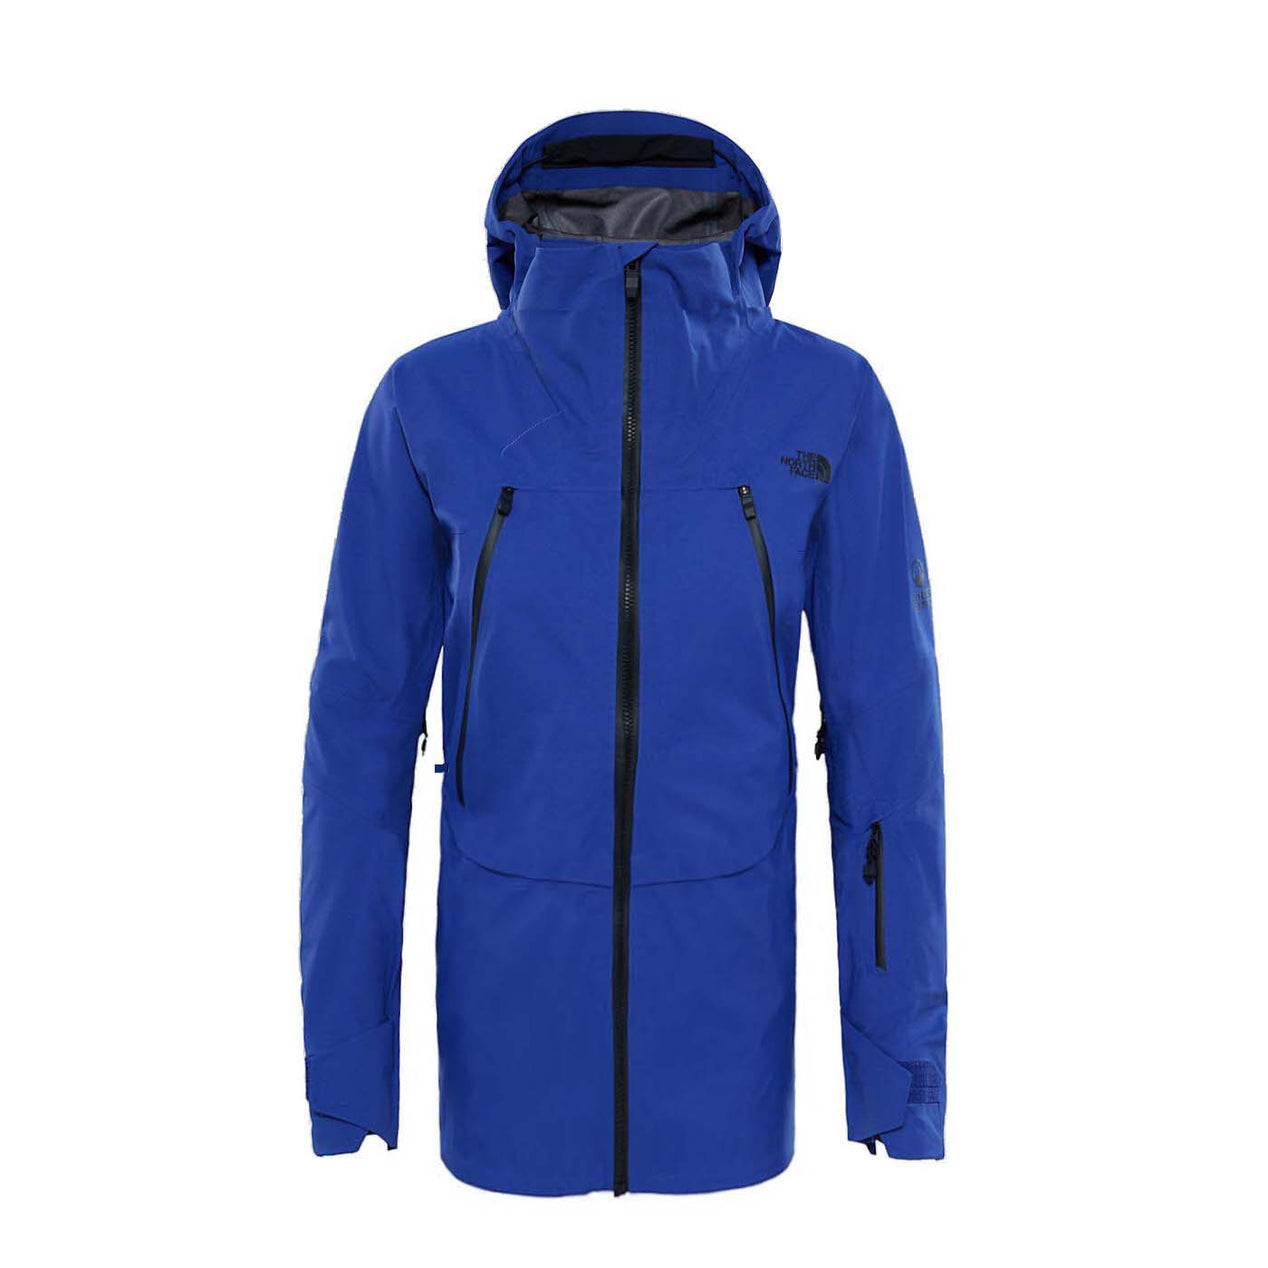 4ff08e5a1875 The North Face Men s Purist Triclimate® Jacket Past Season ...